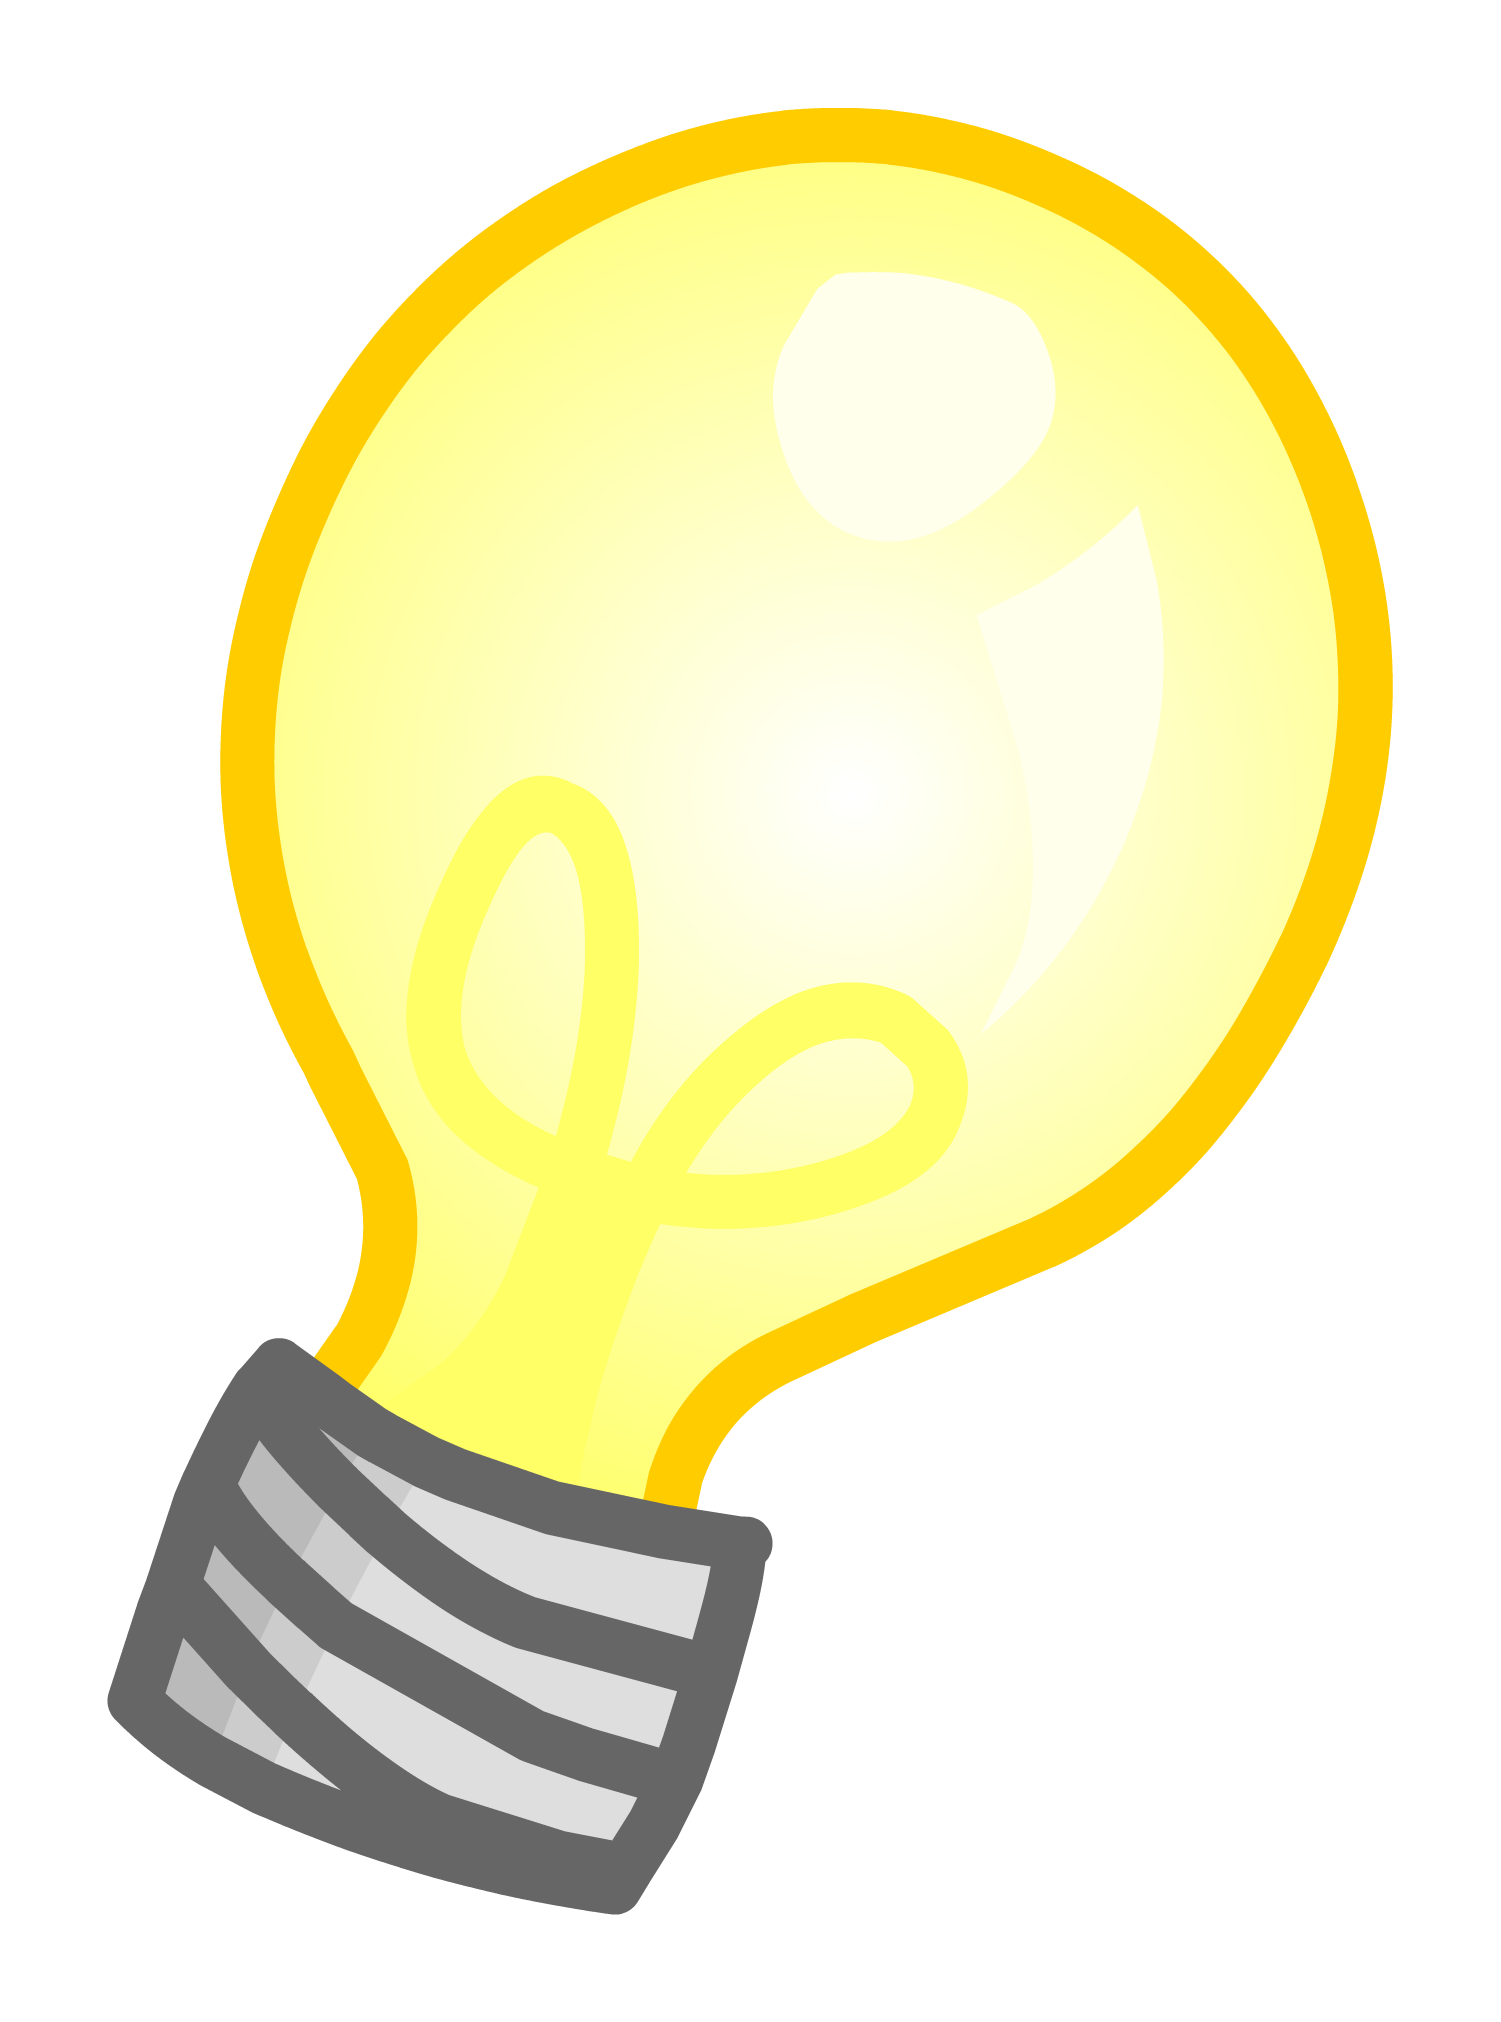 Lightbulb clipart png clip art black and white stock Light Bulb PNG Images - Free Icons and PNG Backgrounds clip art black and white stock